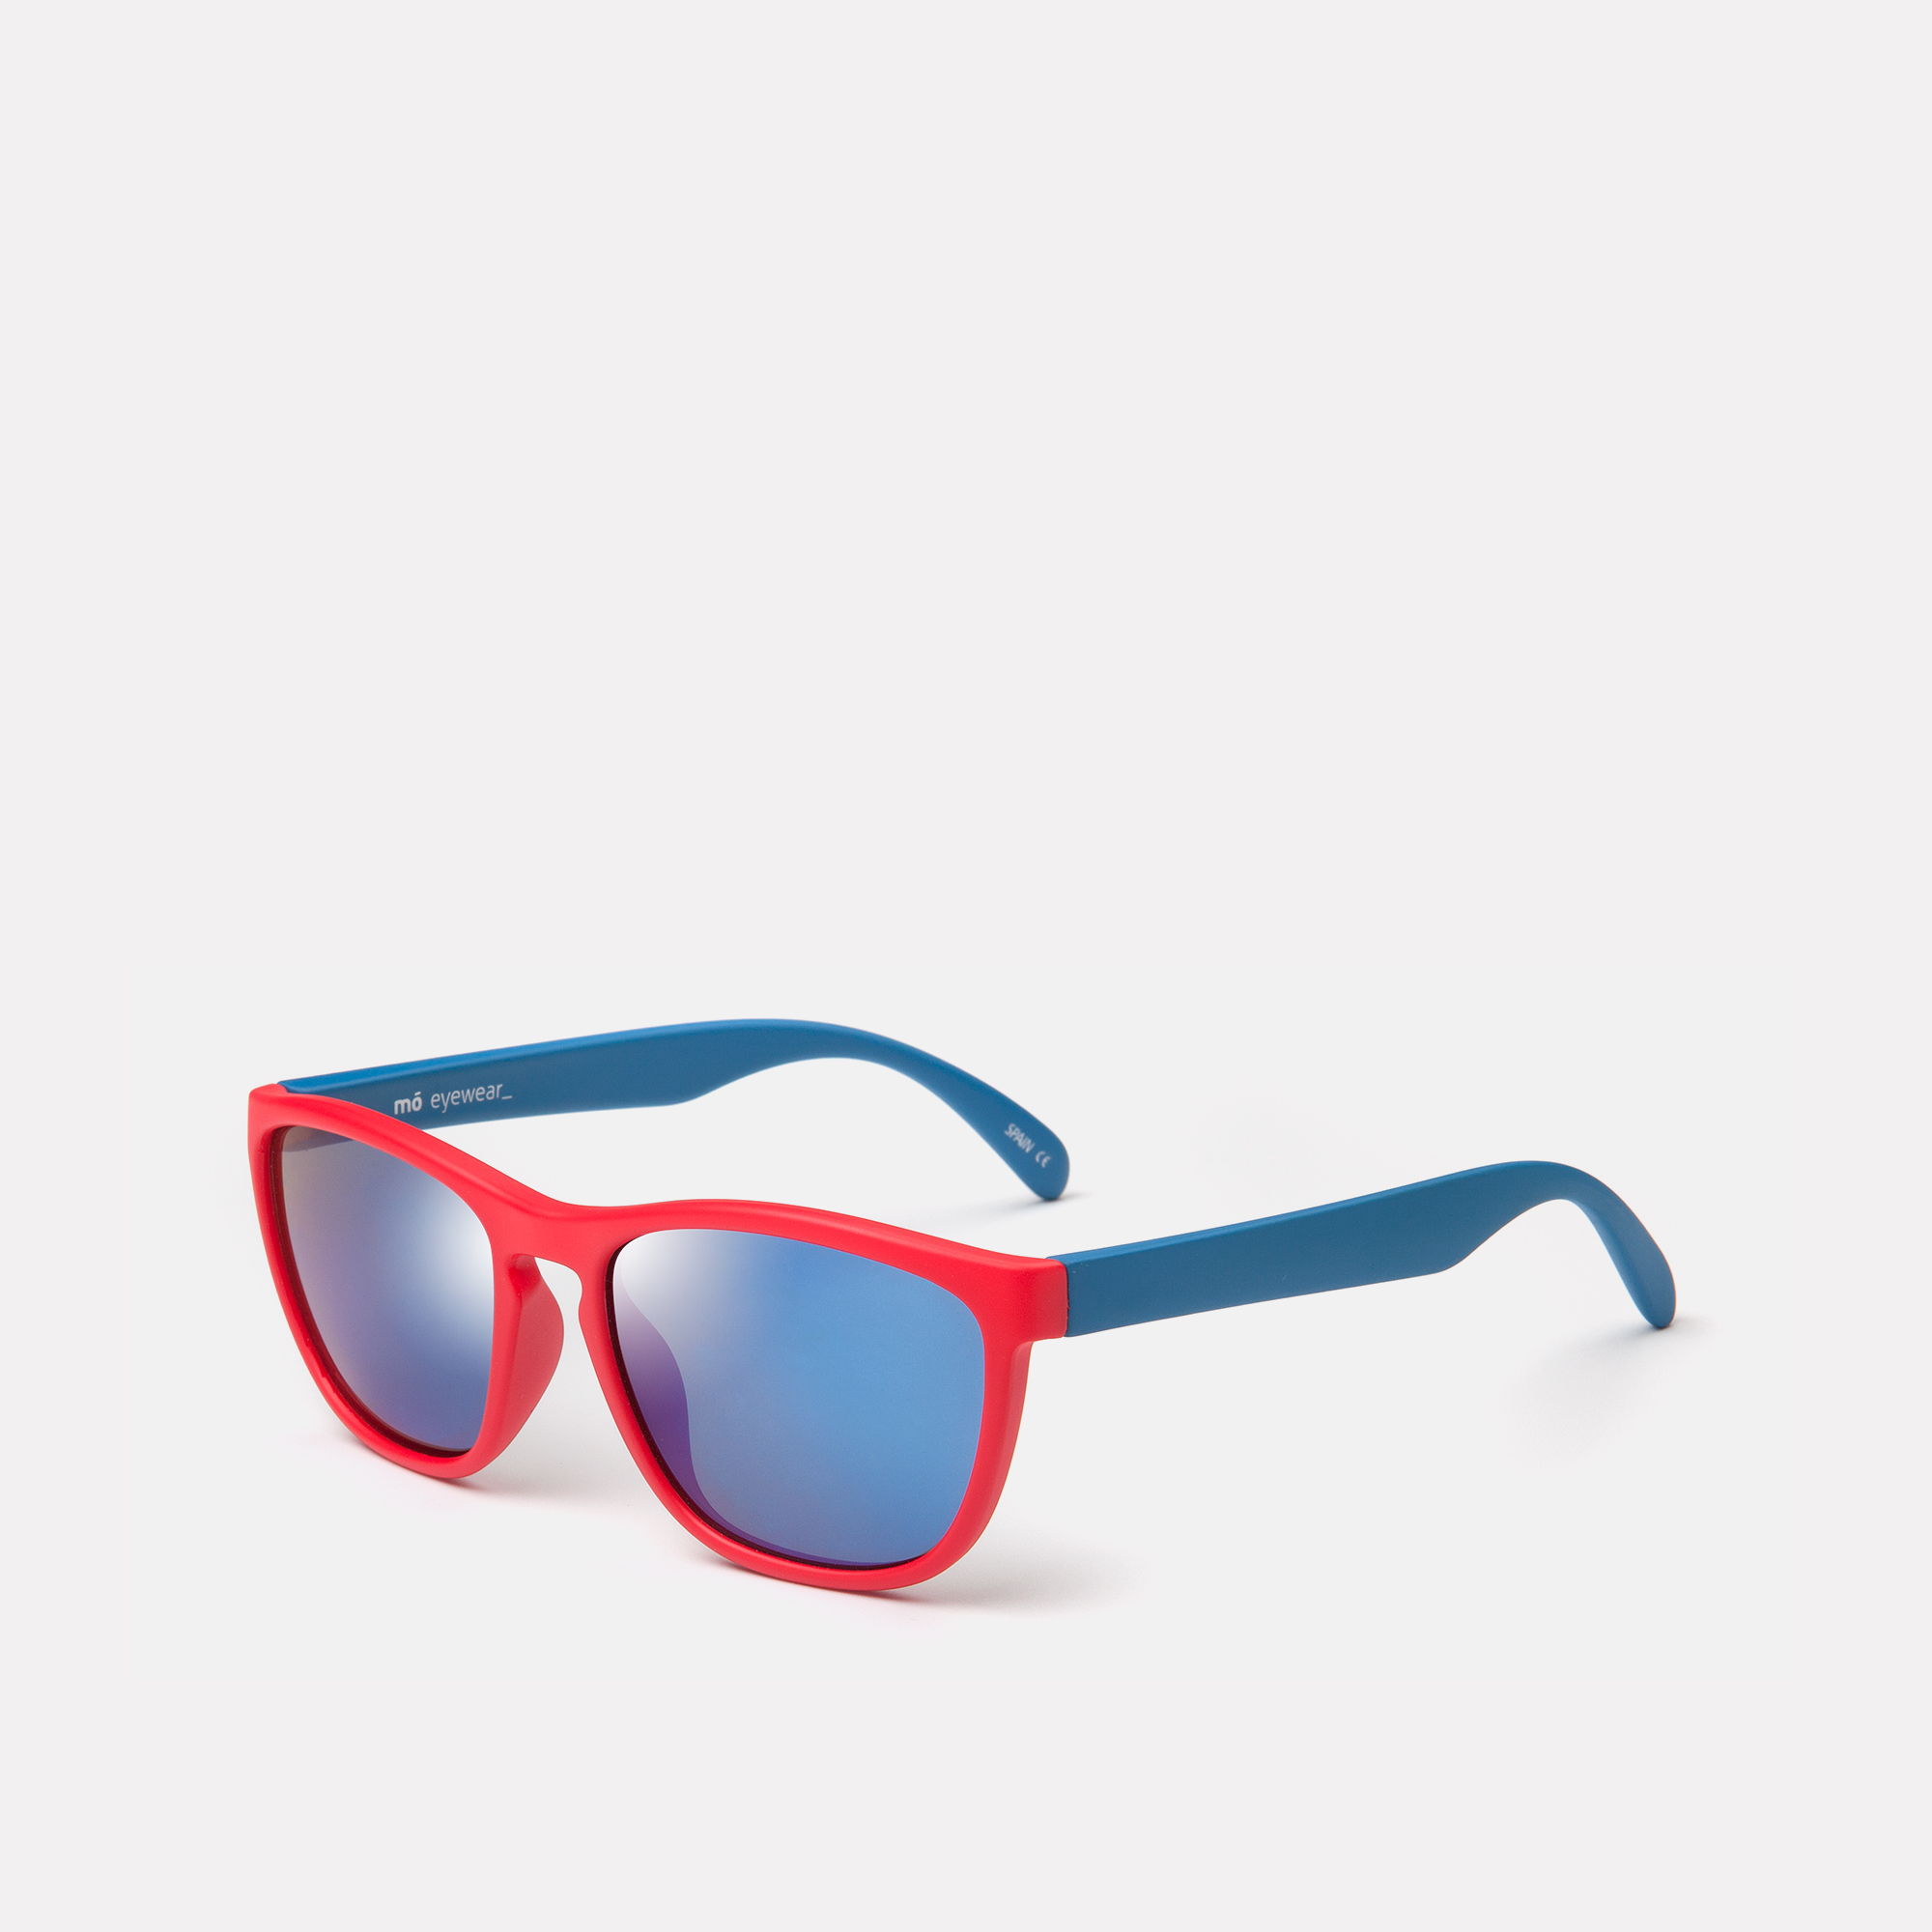 mó sun kids 57I B, red/blue, hi-res